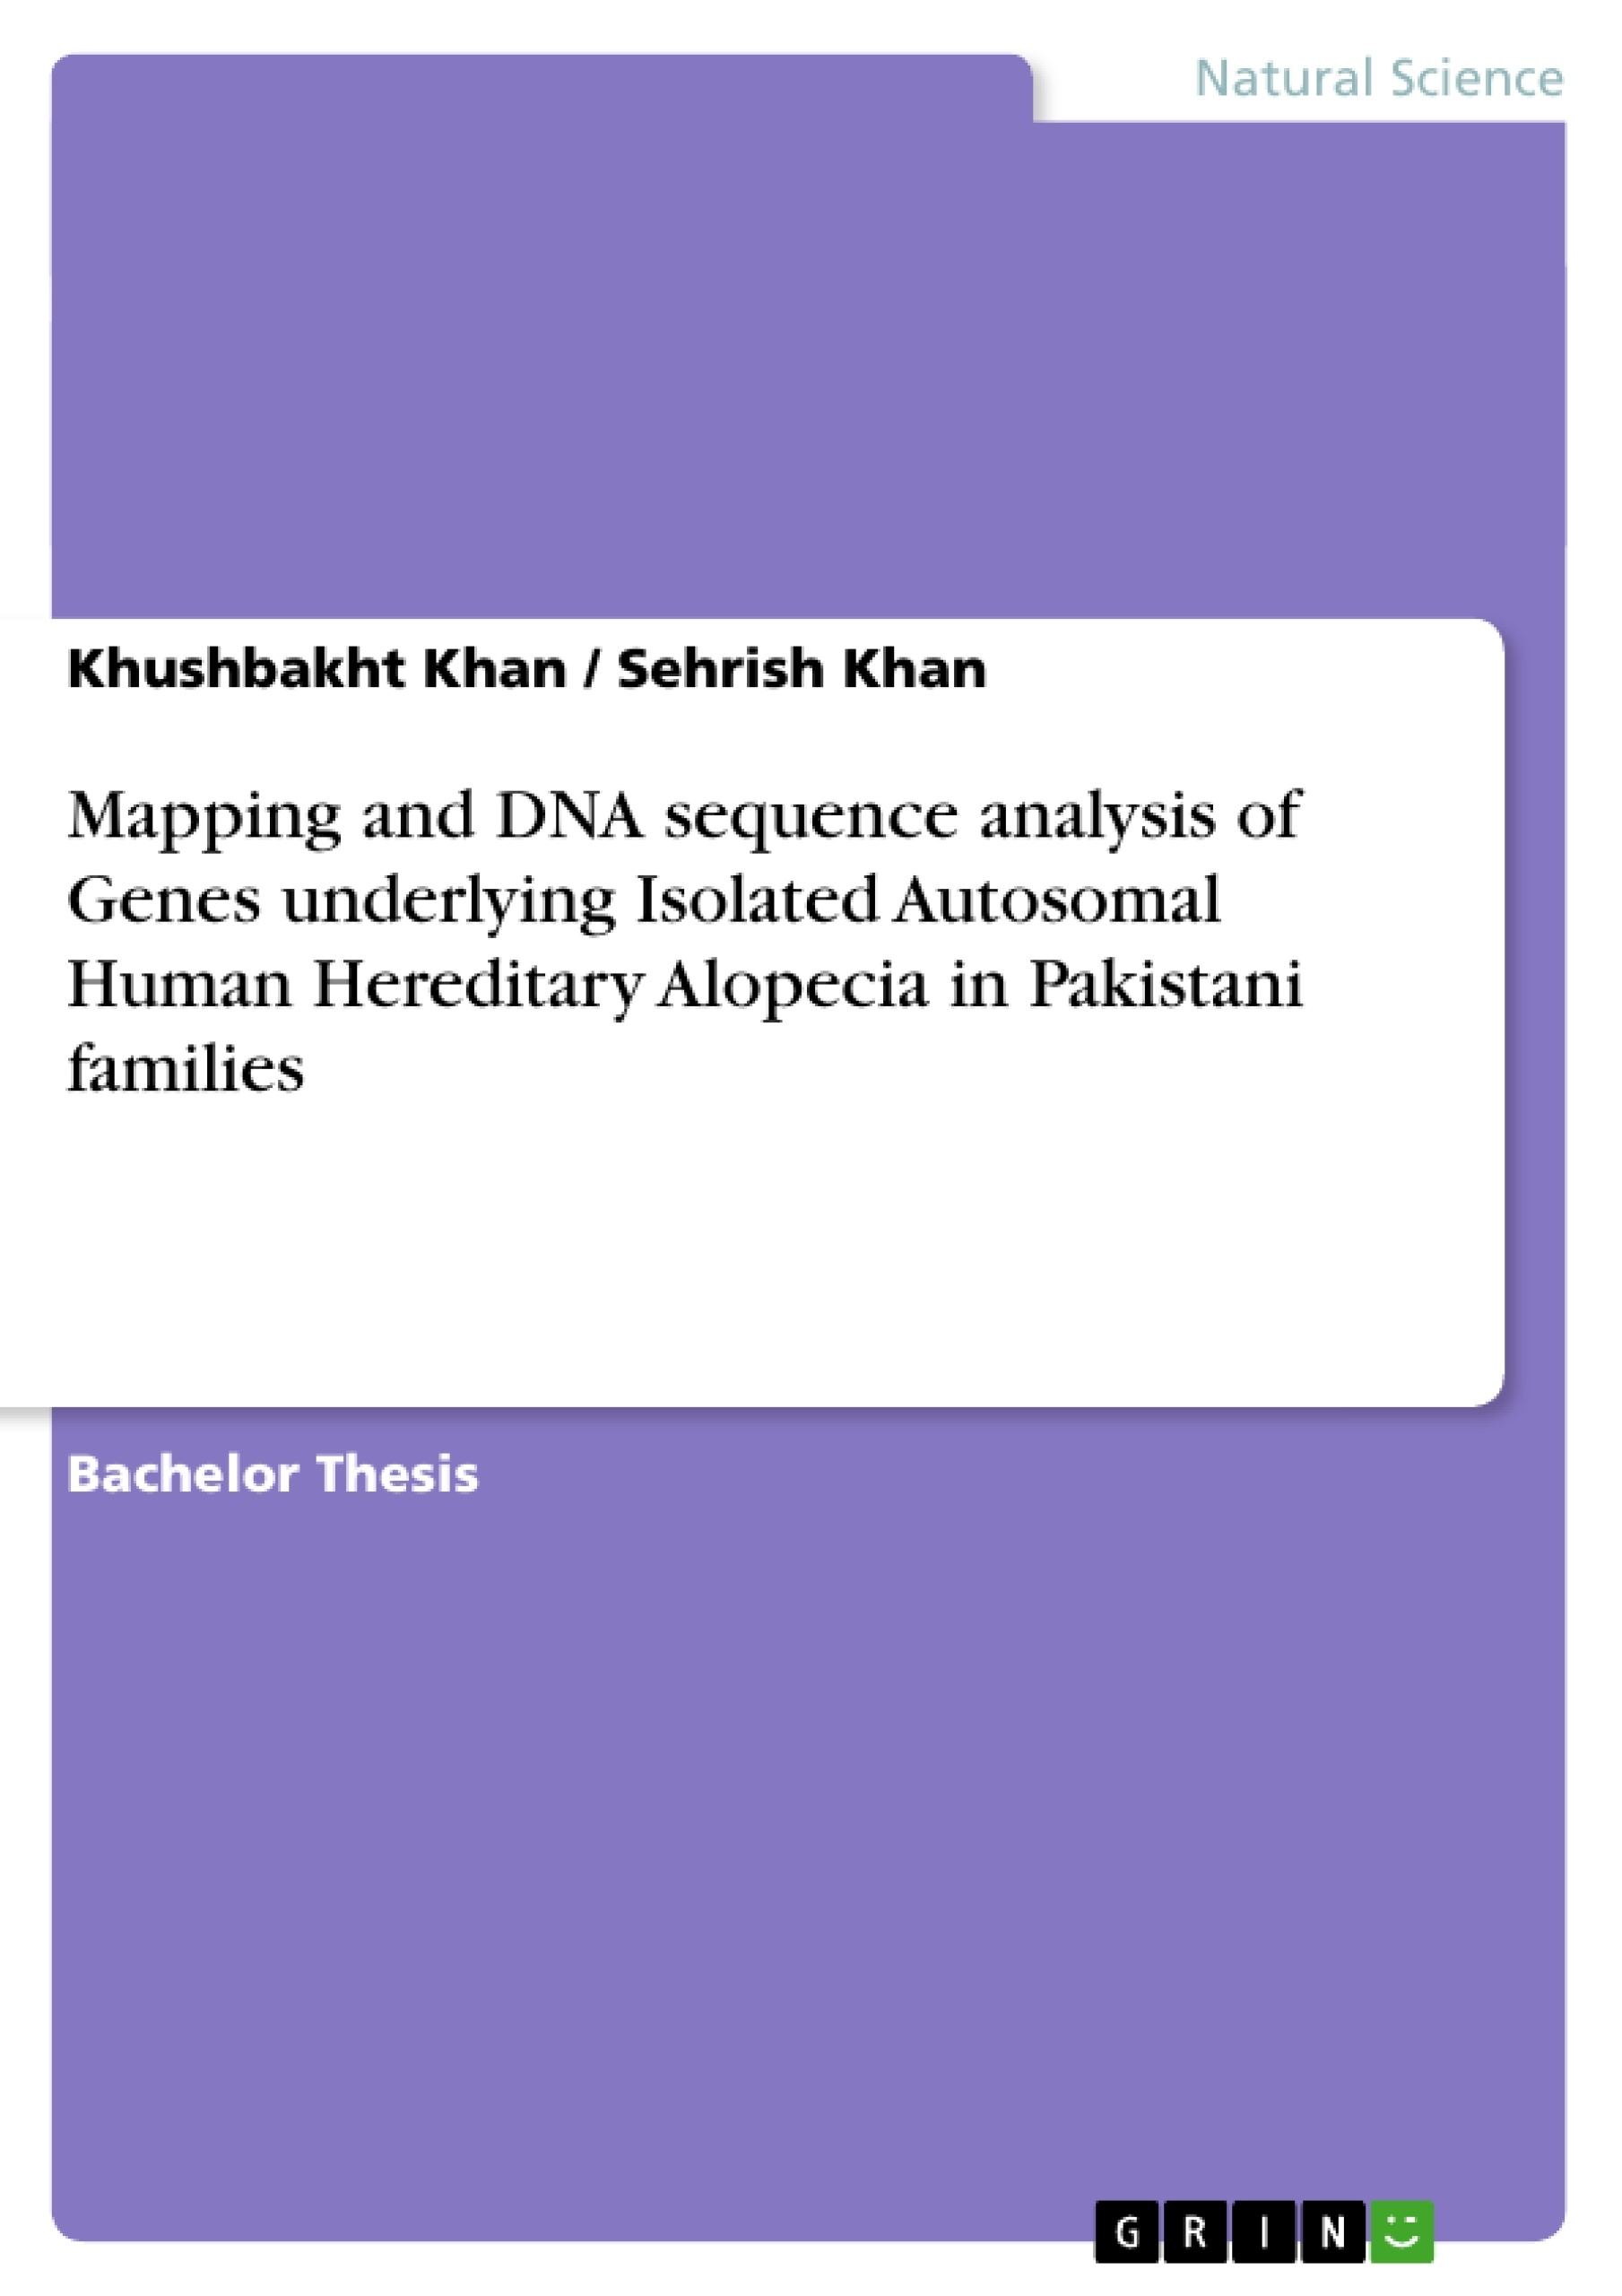 Title: Mapping and DNA sequence analysis of Genes underlying Isolated Autosomal Human Hereditary Alopecia in Pakistani families